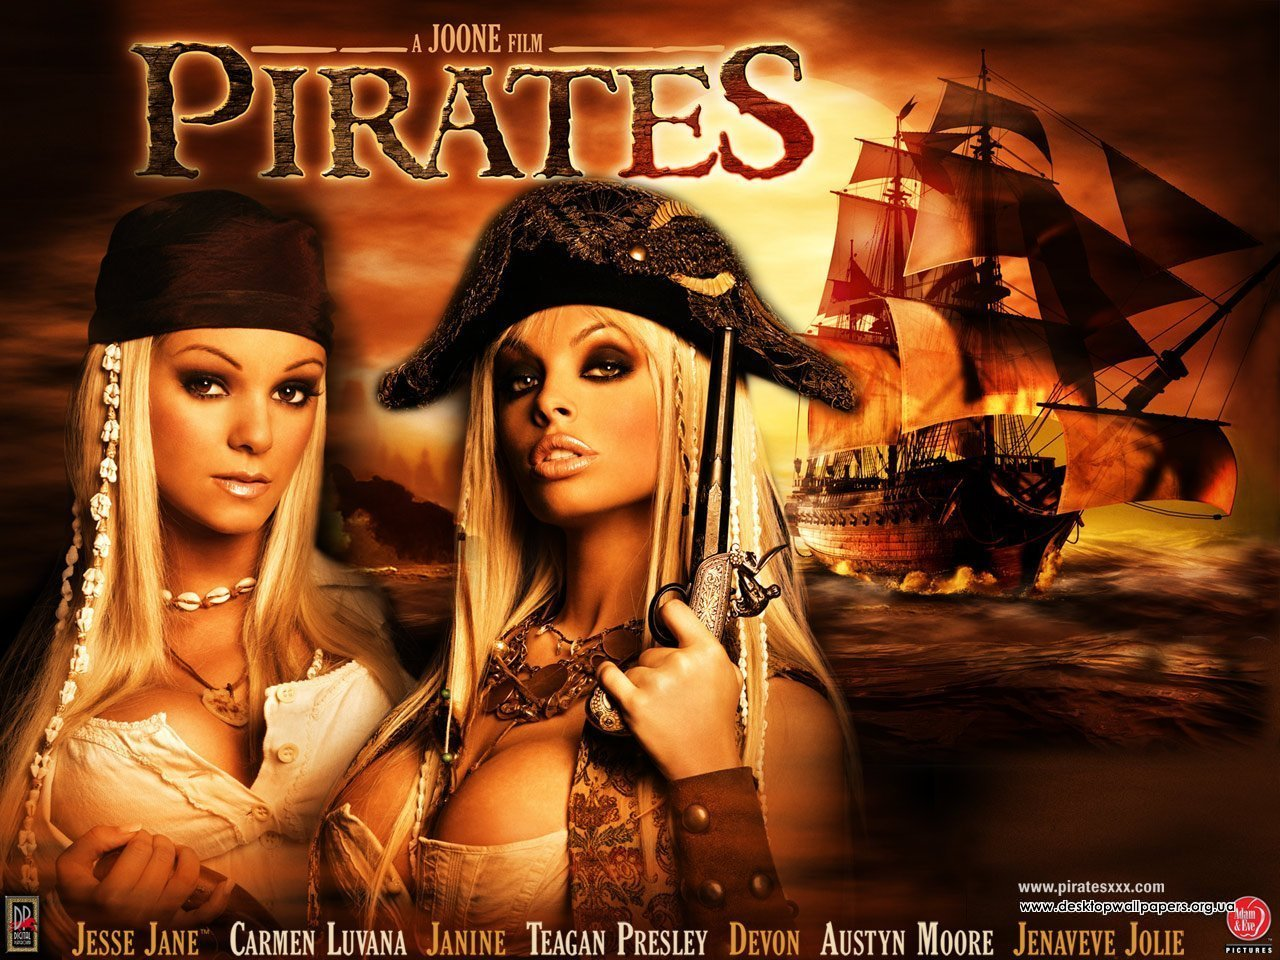 Pirates of caribbean porno and pussy photos nudes scenes